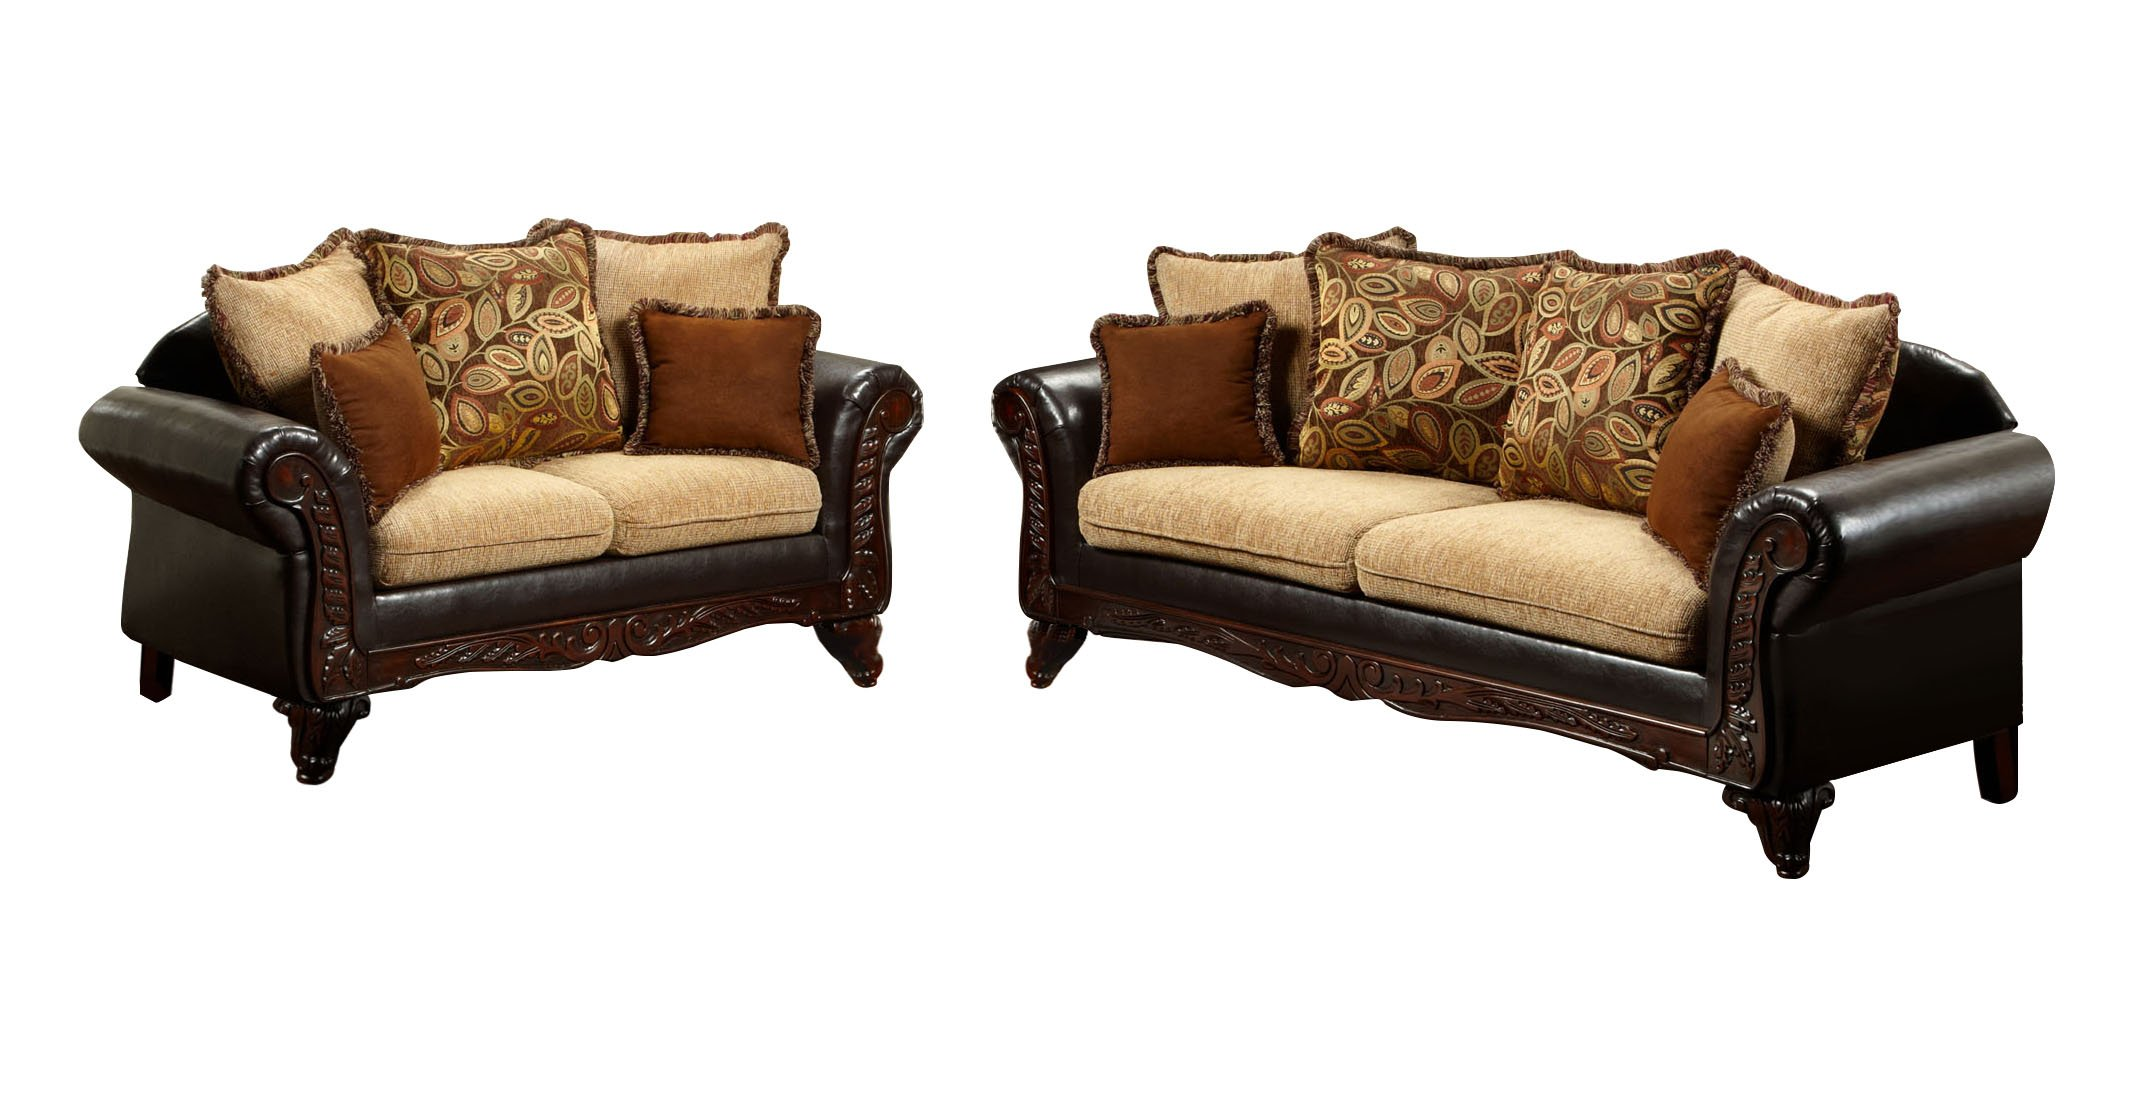 Furniture of America Kamil Classic 2-Piece Sofa Set with Accent Pillows and Wood Trim, Light Mocha and Espresso